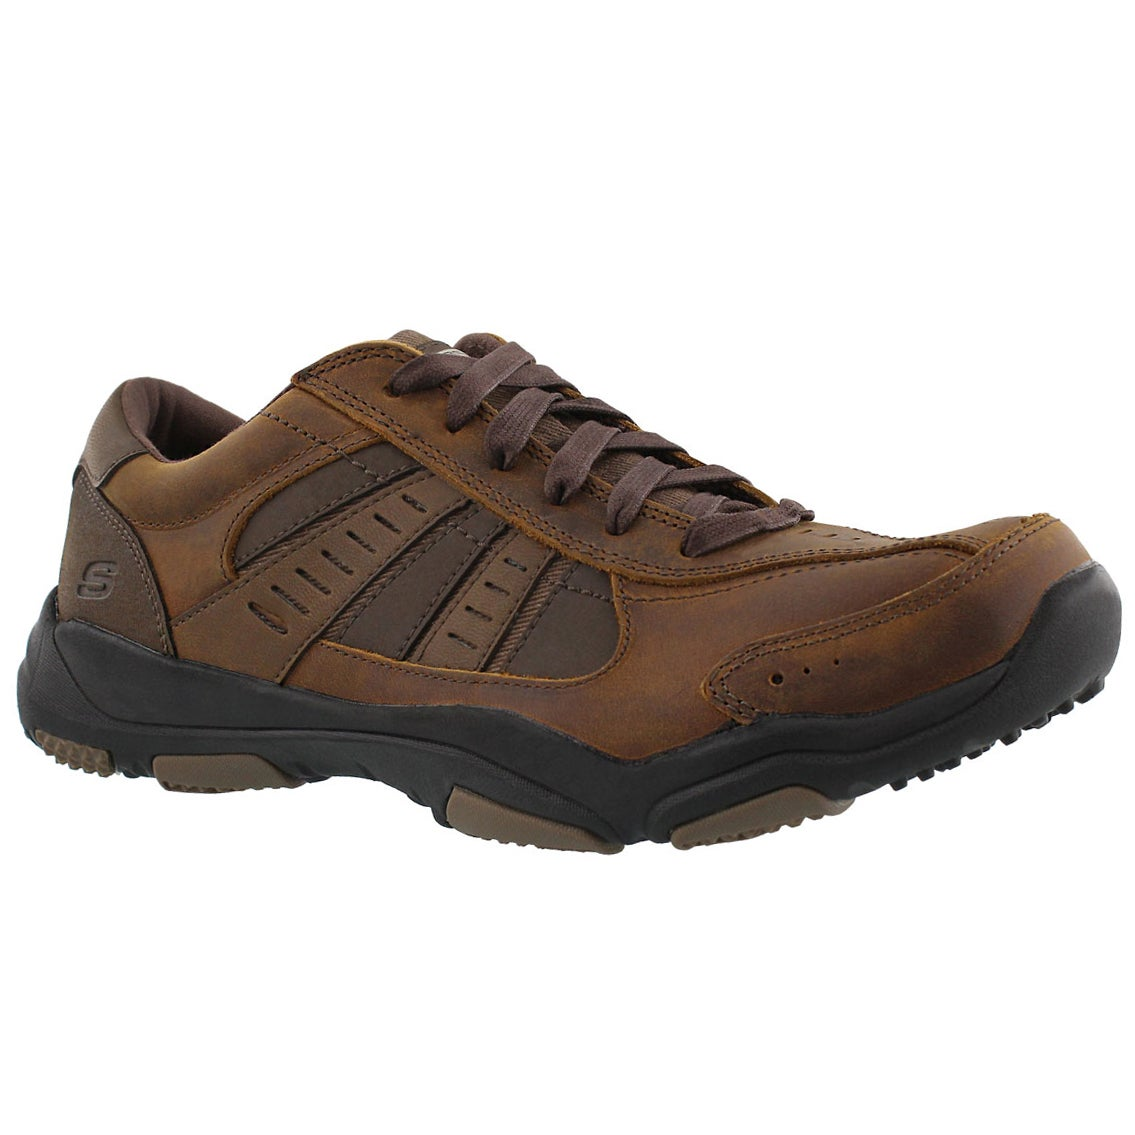 Men's LARSON NERICK dark brown bike toe sneaker